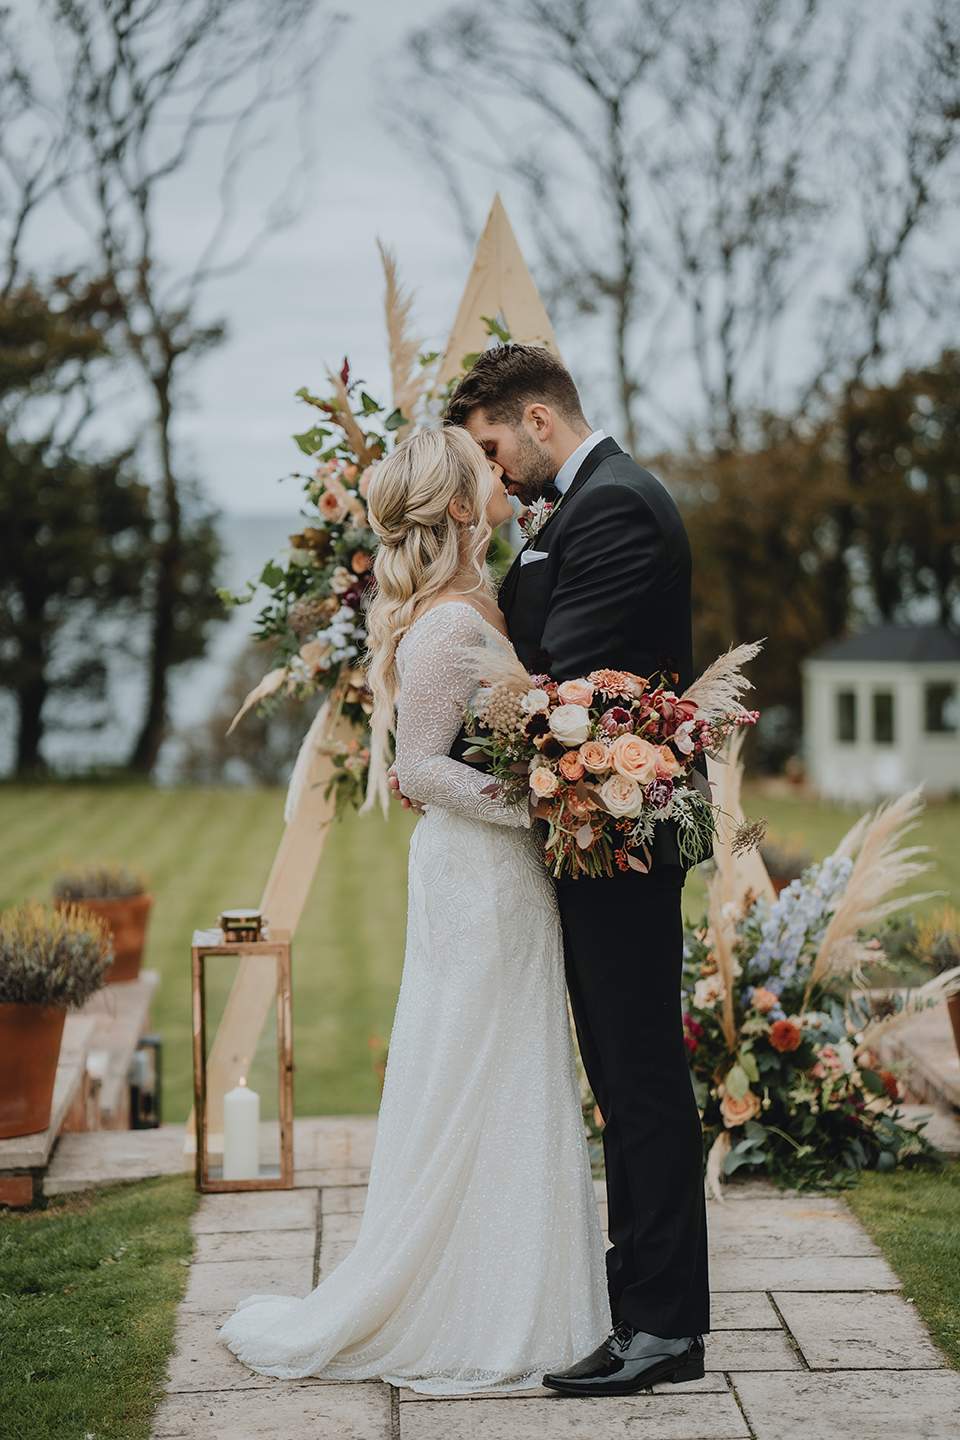 bride and groom kissing at the end of their outdoor ceremony in the grounds of Hillmount House. They have a triangular floral arch behind them.